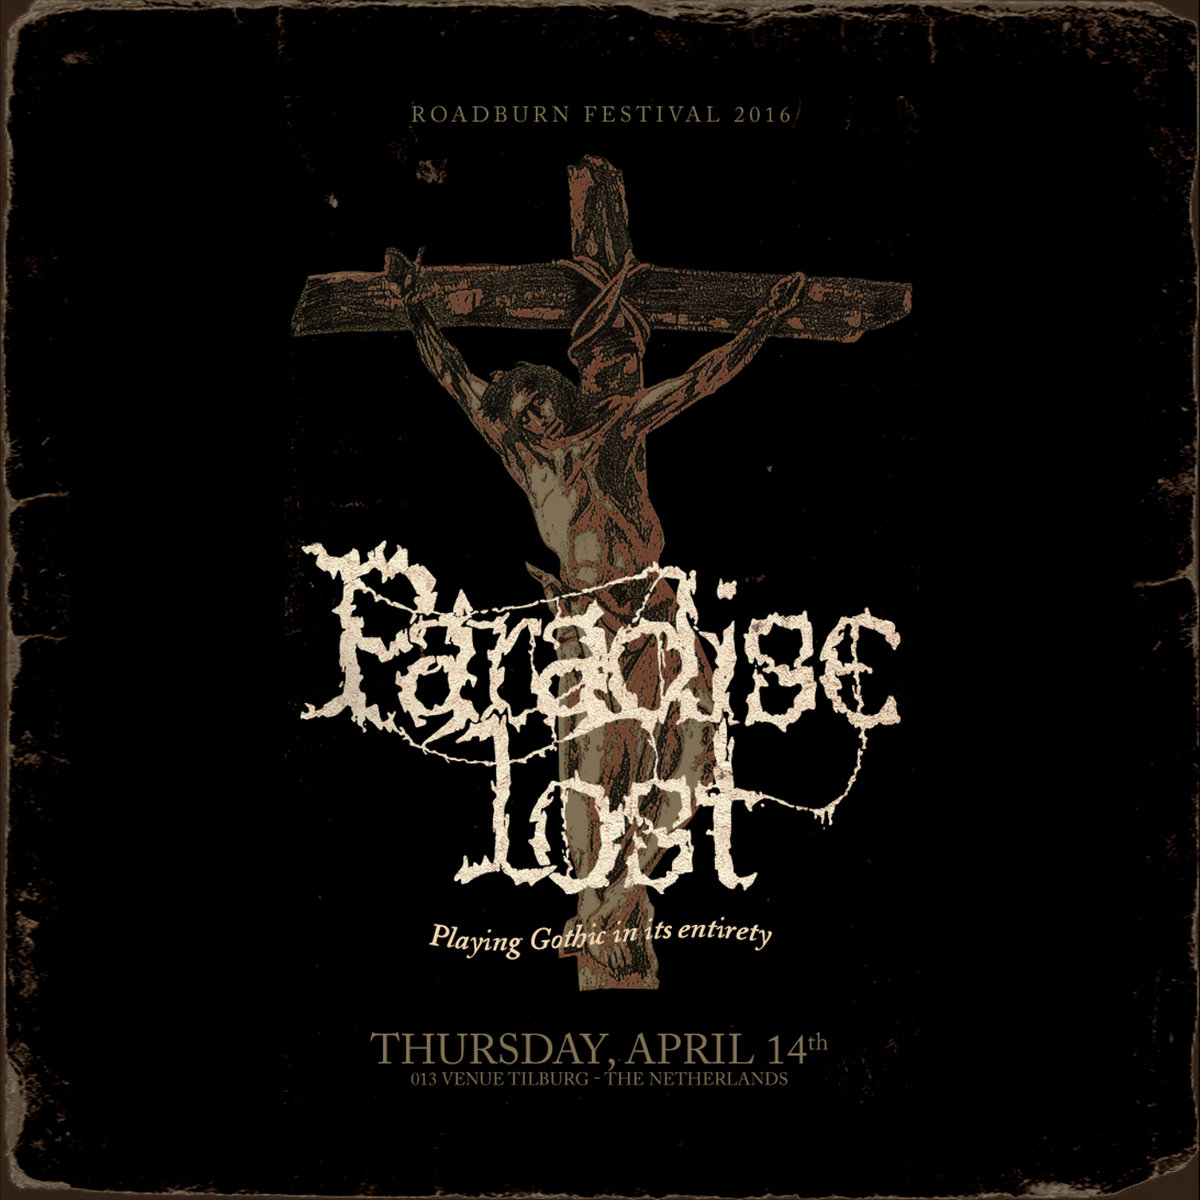 paradise lost gothic live at roadburn 2016